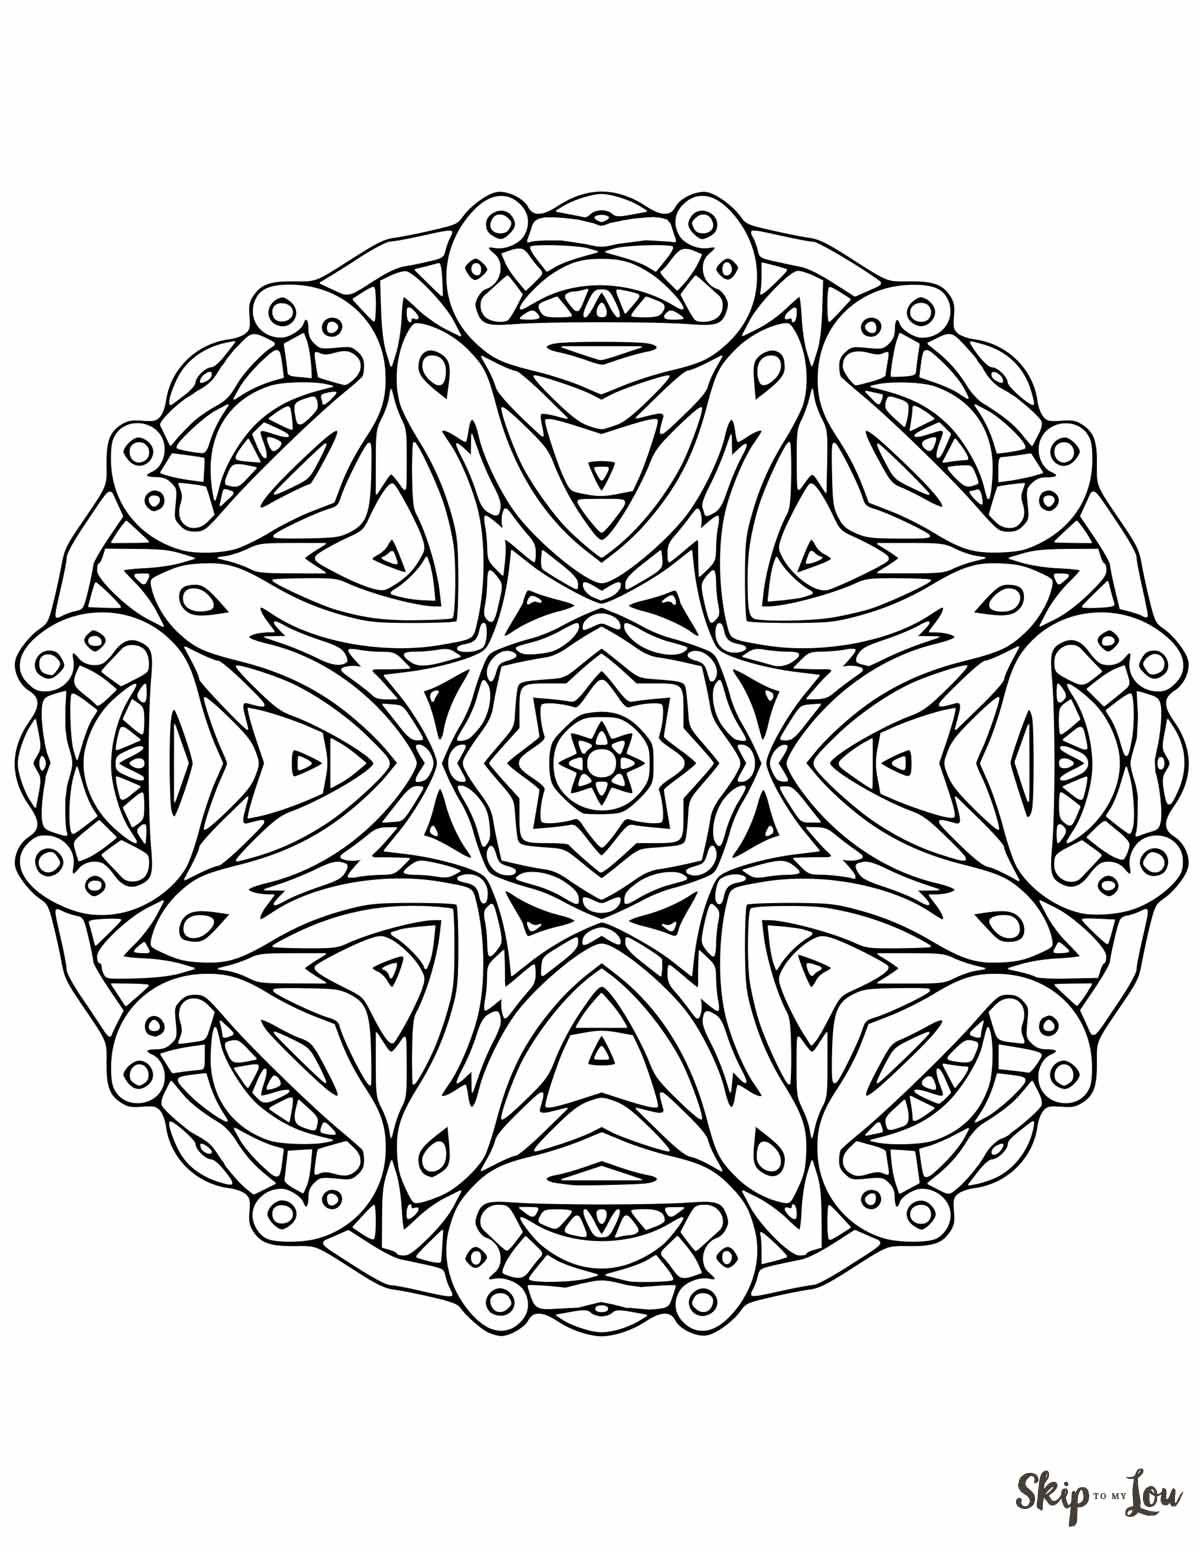 Mandala 2 | Skip to my Lou Free printables | Pinterest